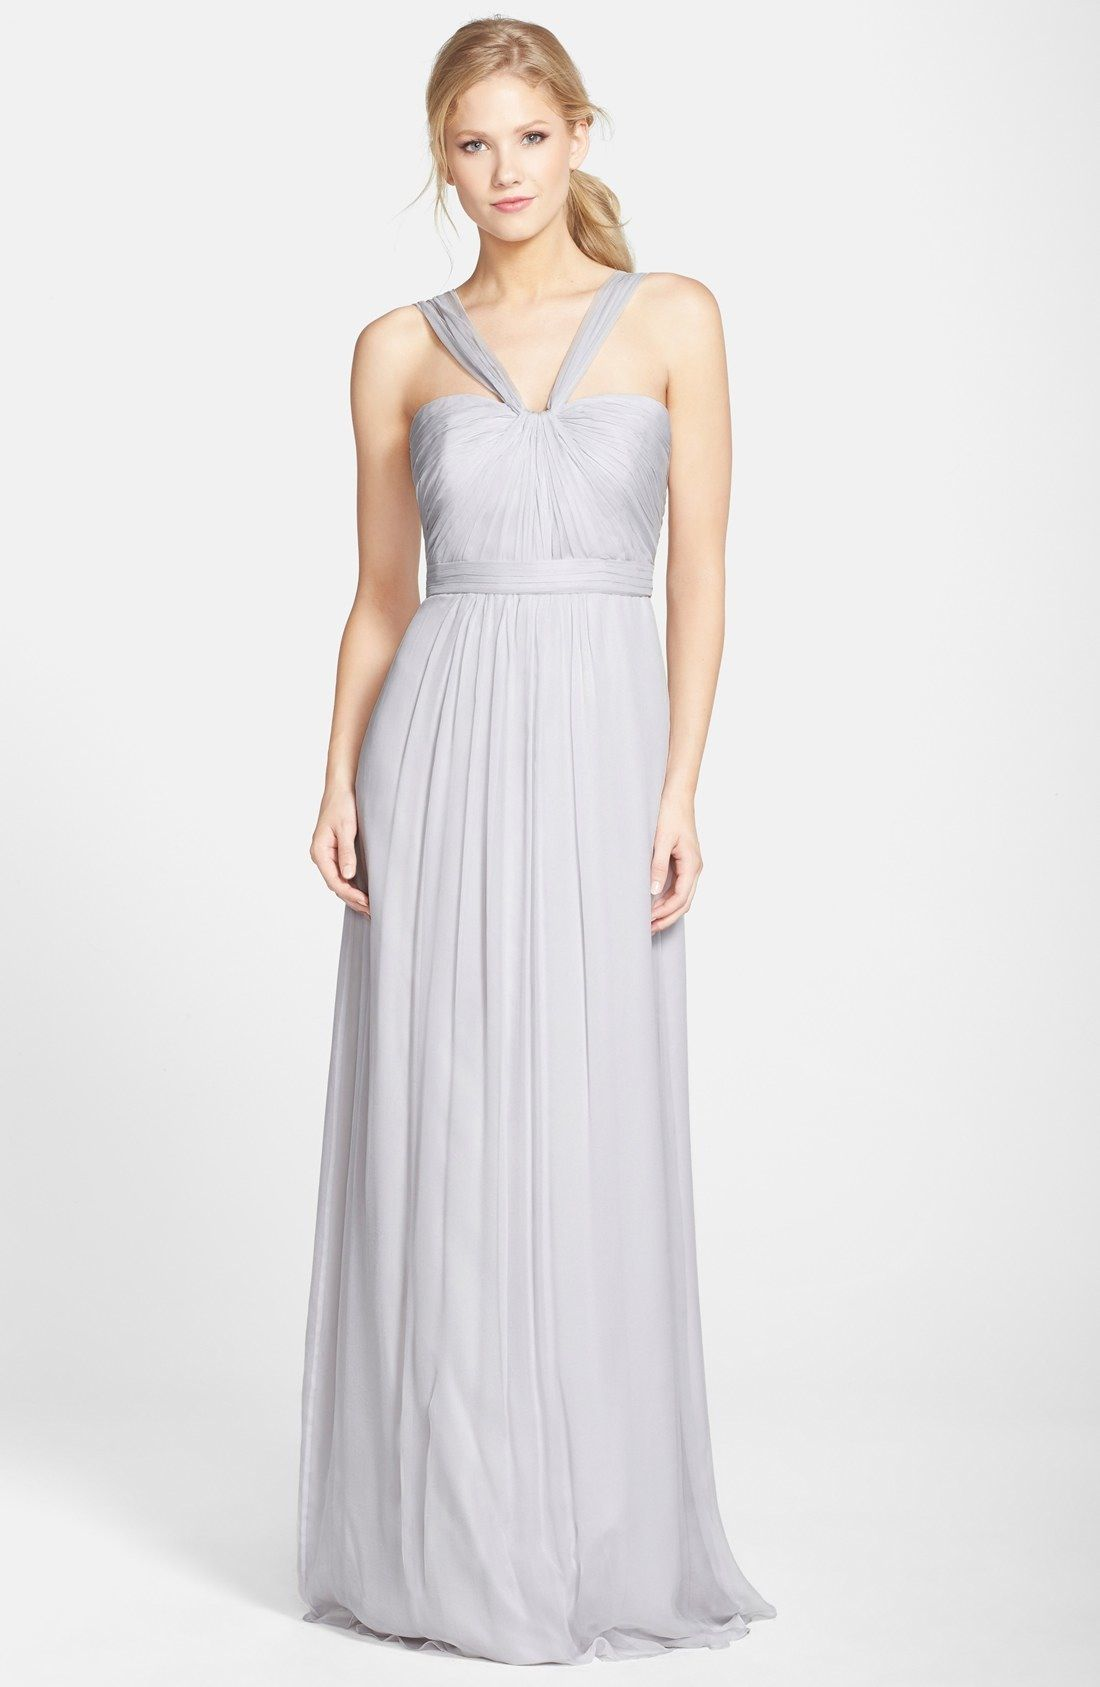 Am X Strap Silk Chiffon Gown Available At Nordstrom